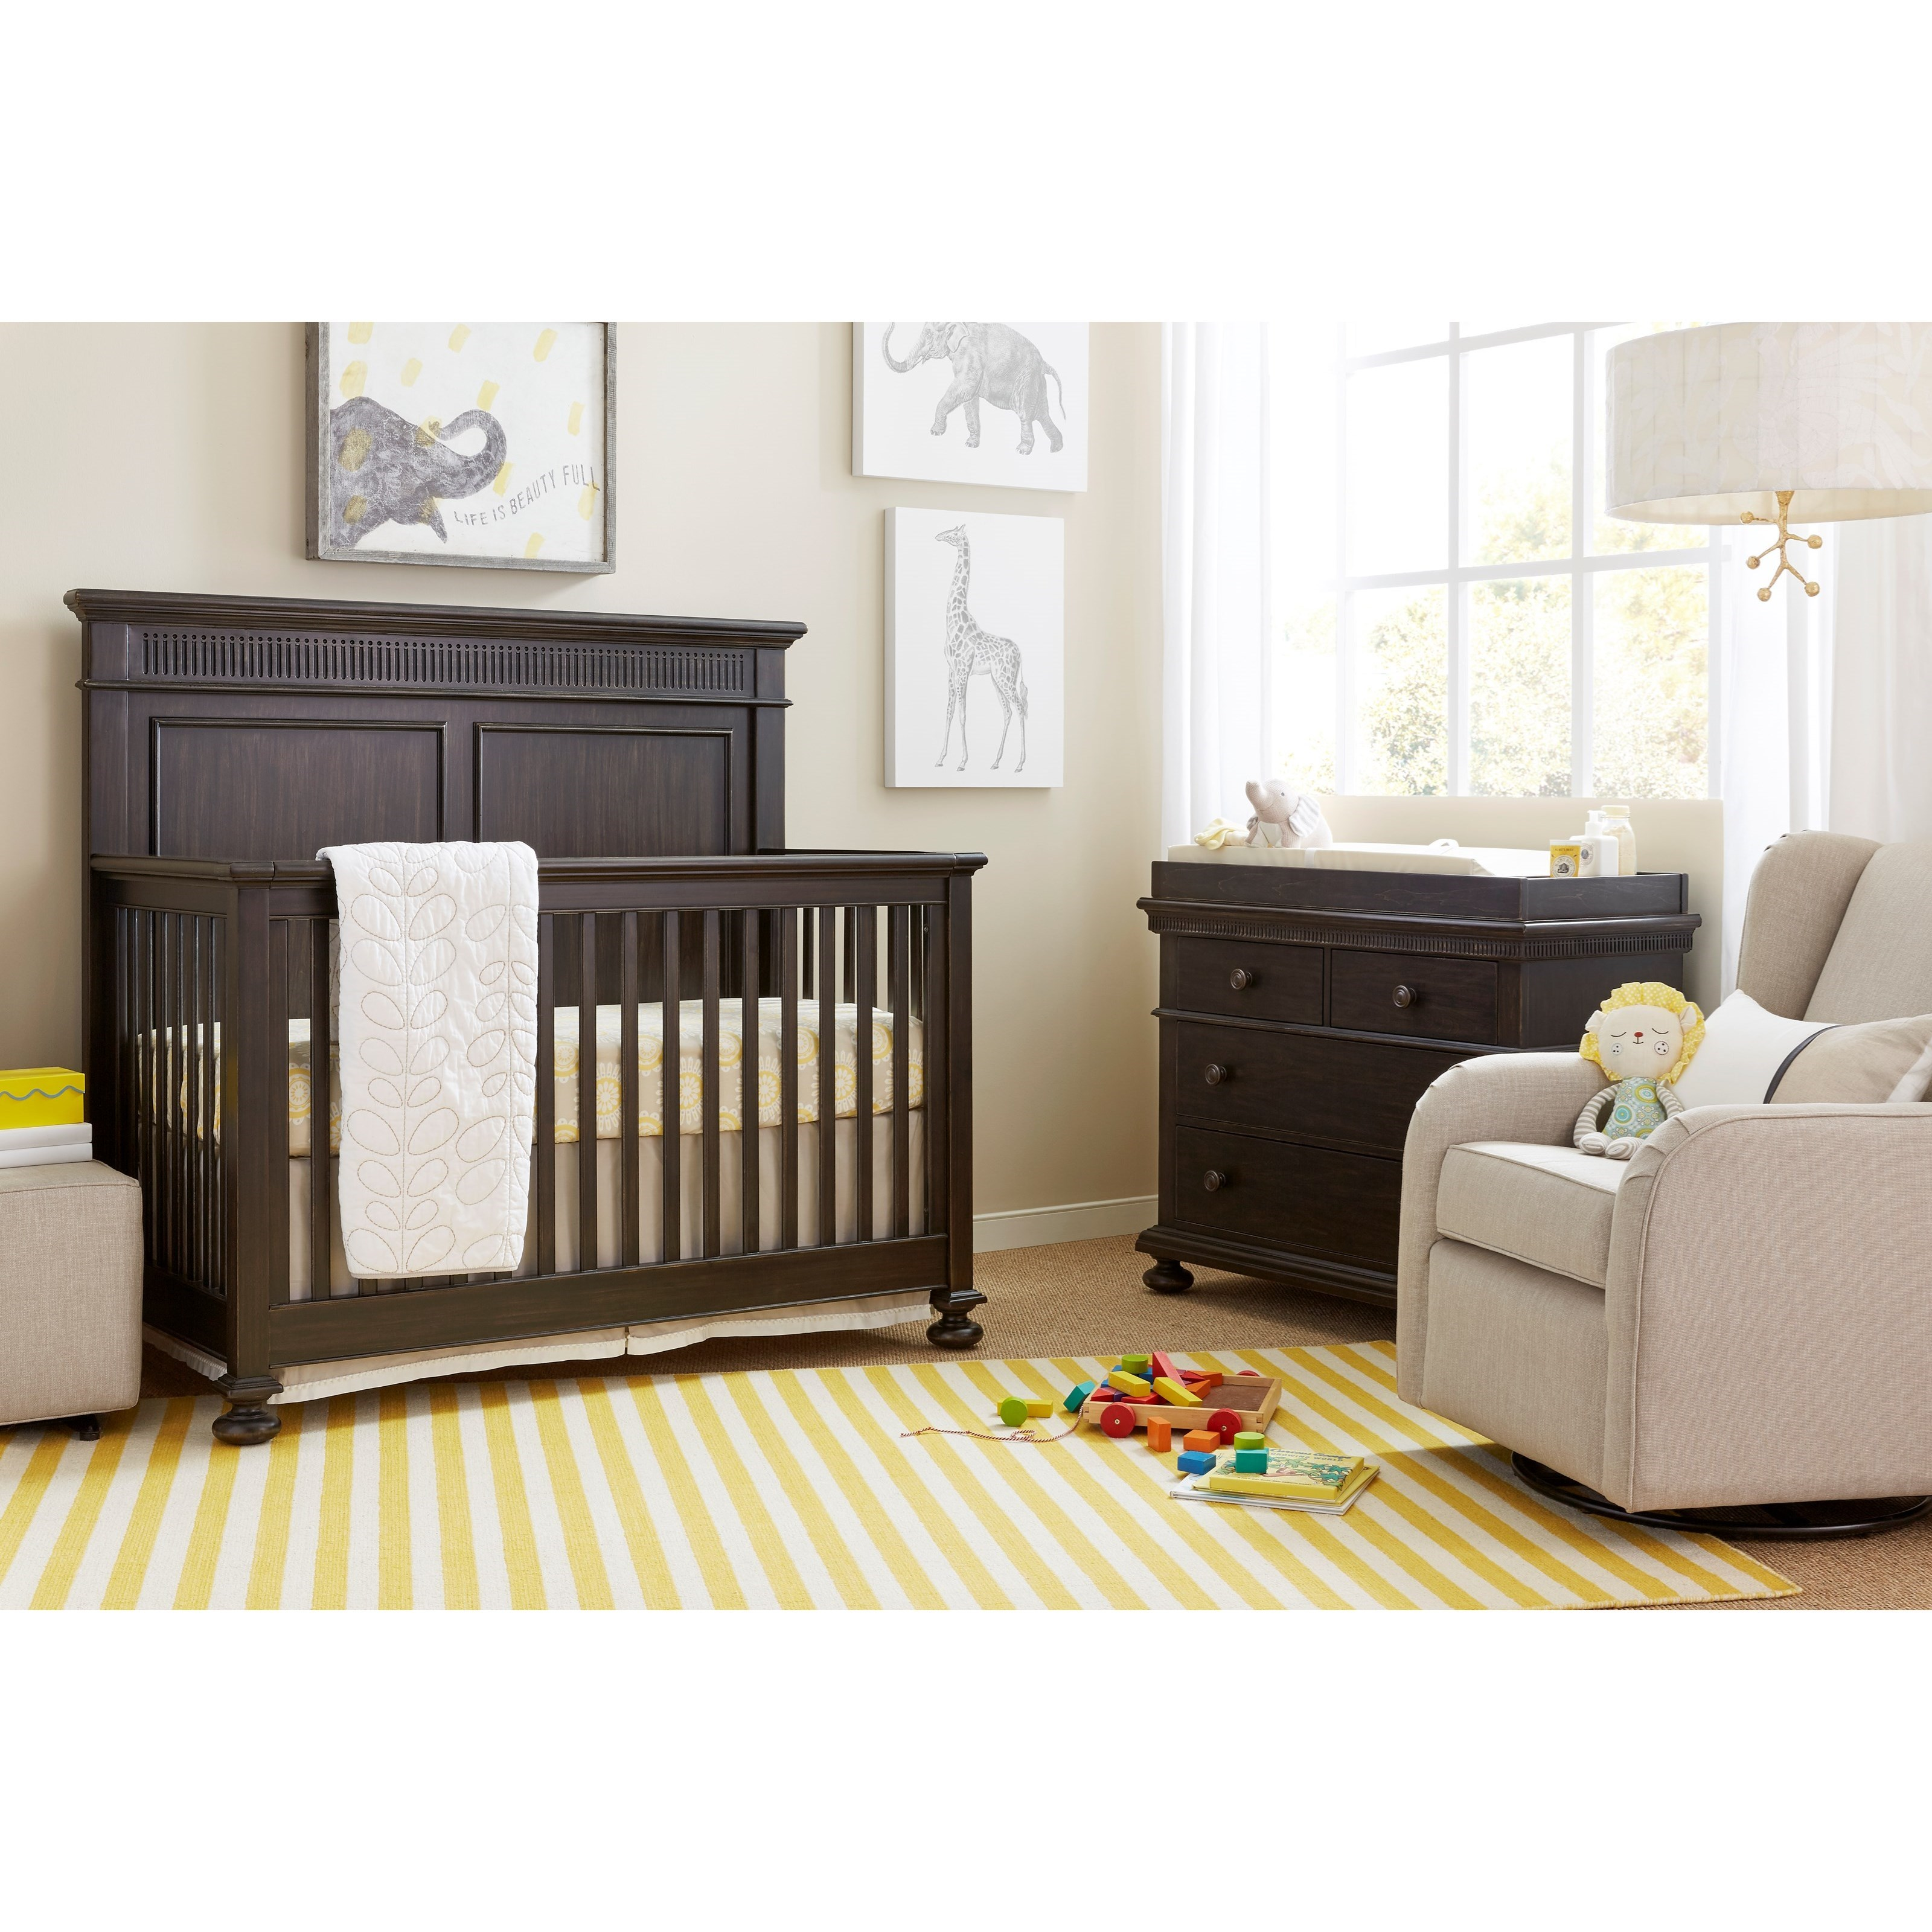 Stone & Leigh Furniture Smiling Hill Crib Bedroom Group - Item Number: 560-83 C Bedroom Group 1